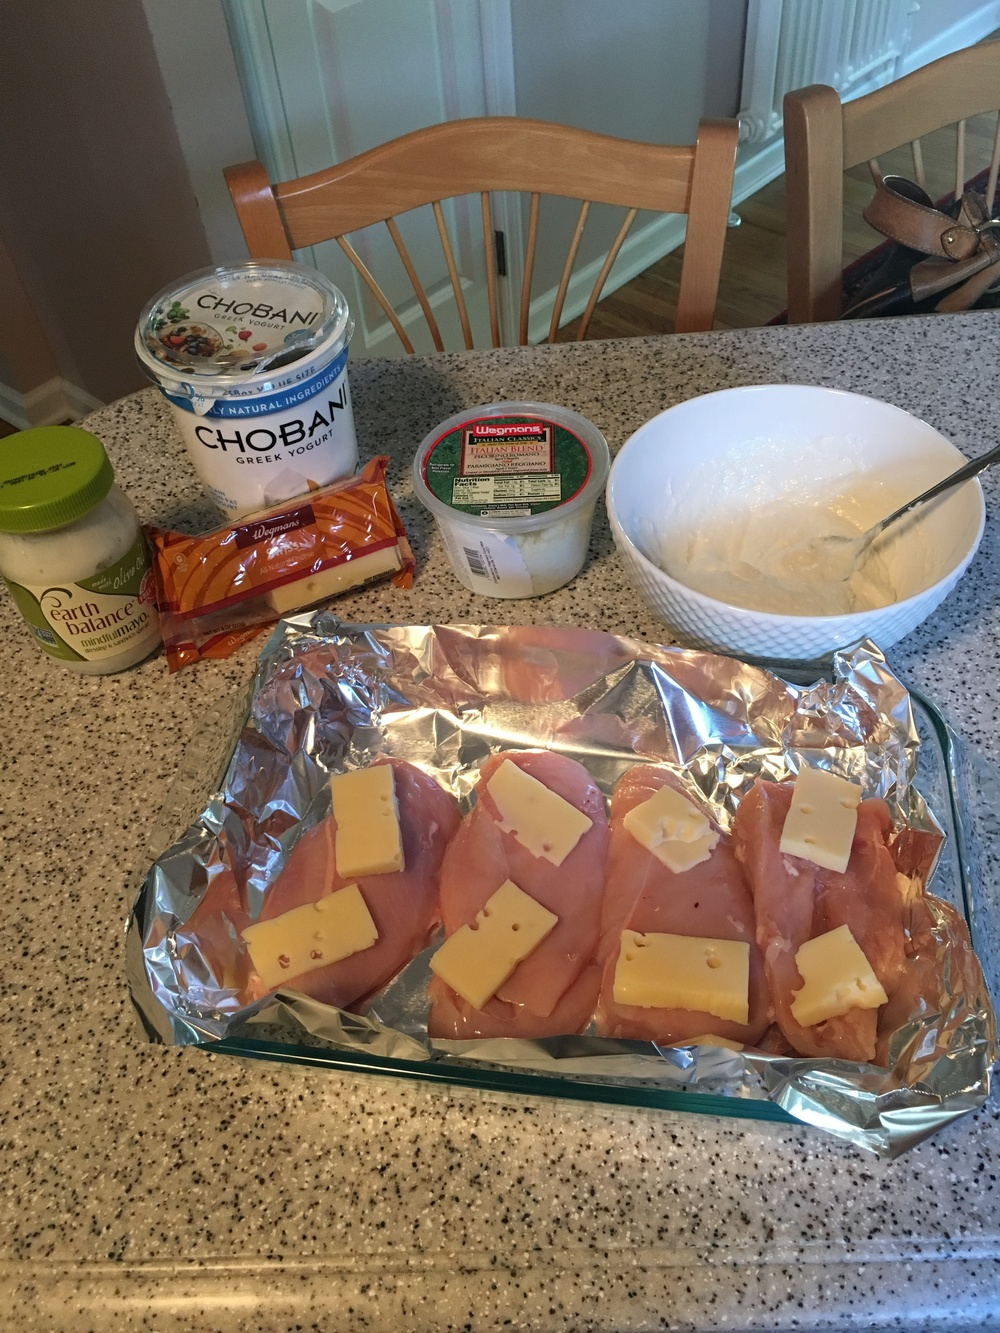 Ingredients shown above and slices of cheese on chicken in dish with foil